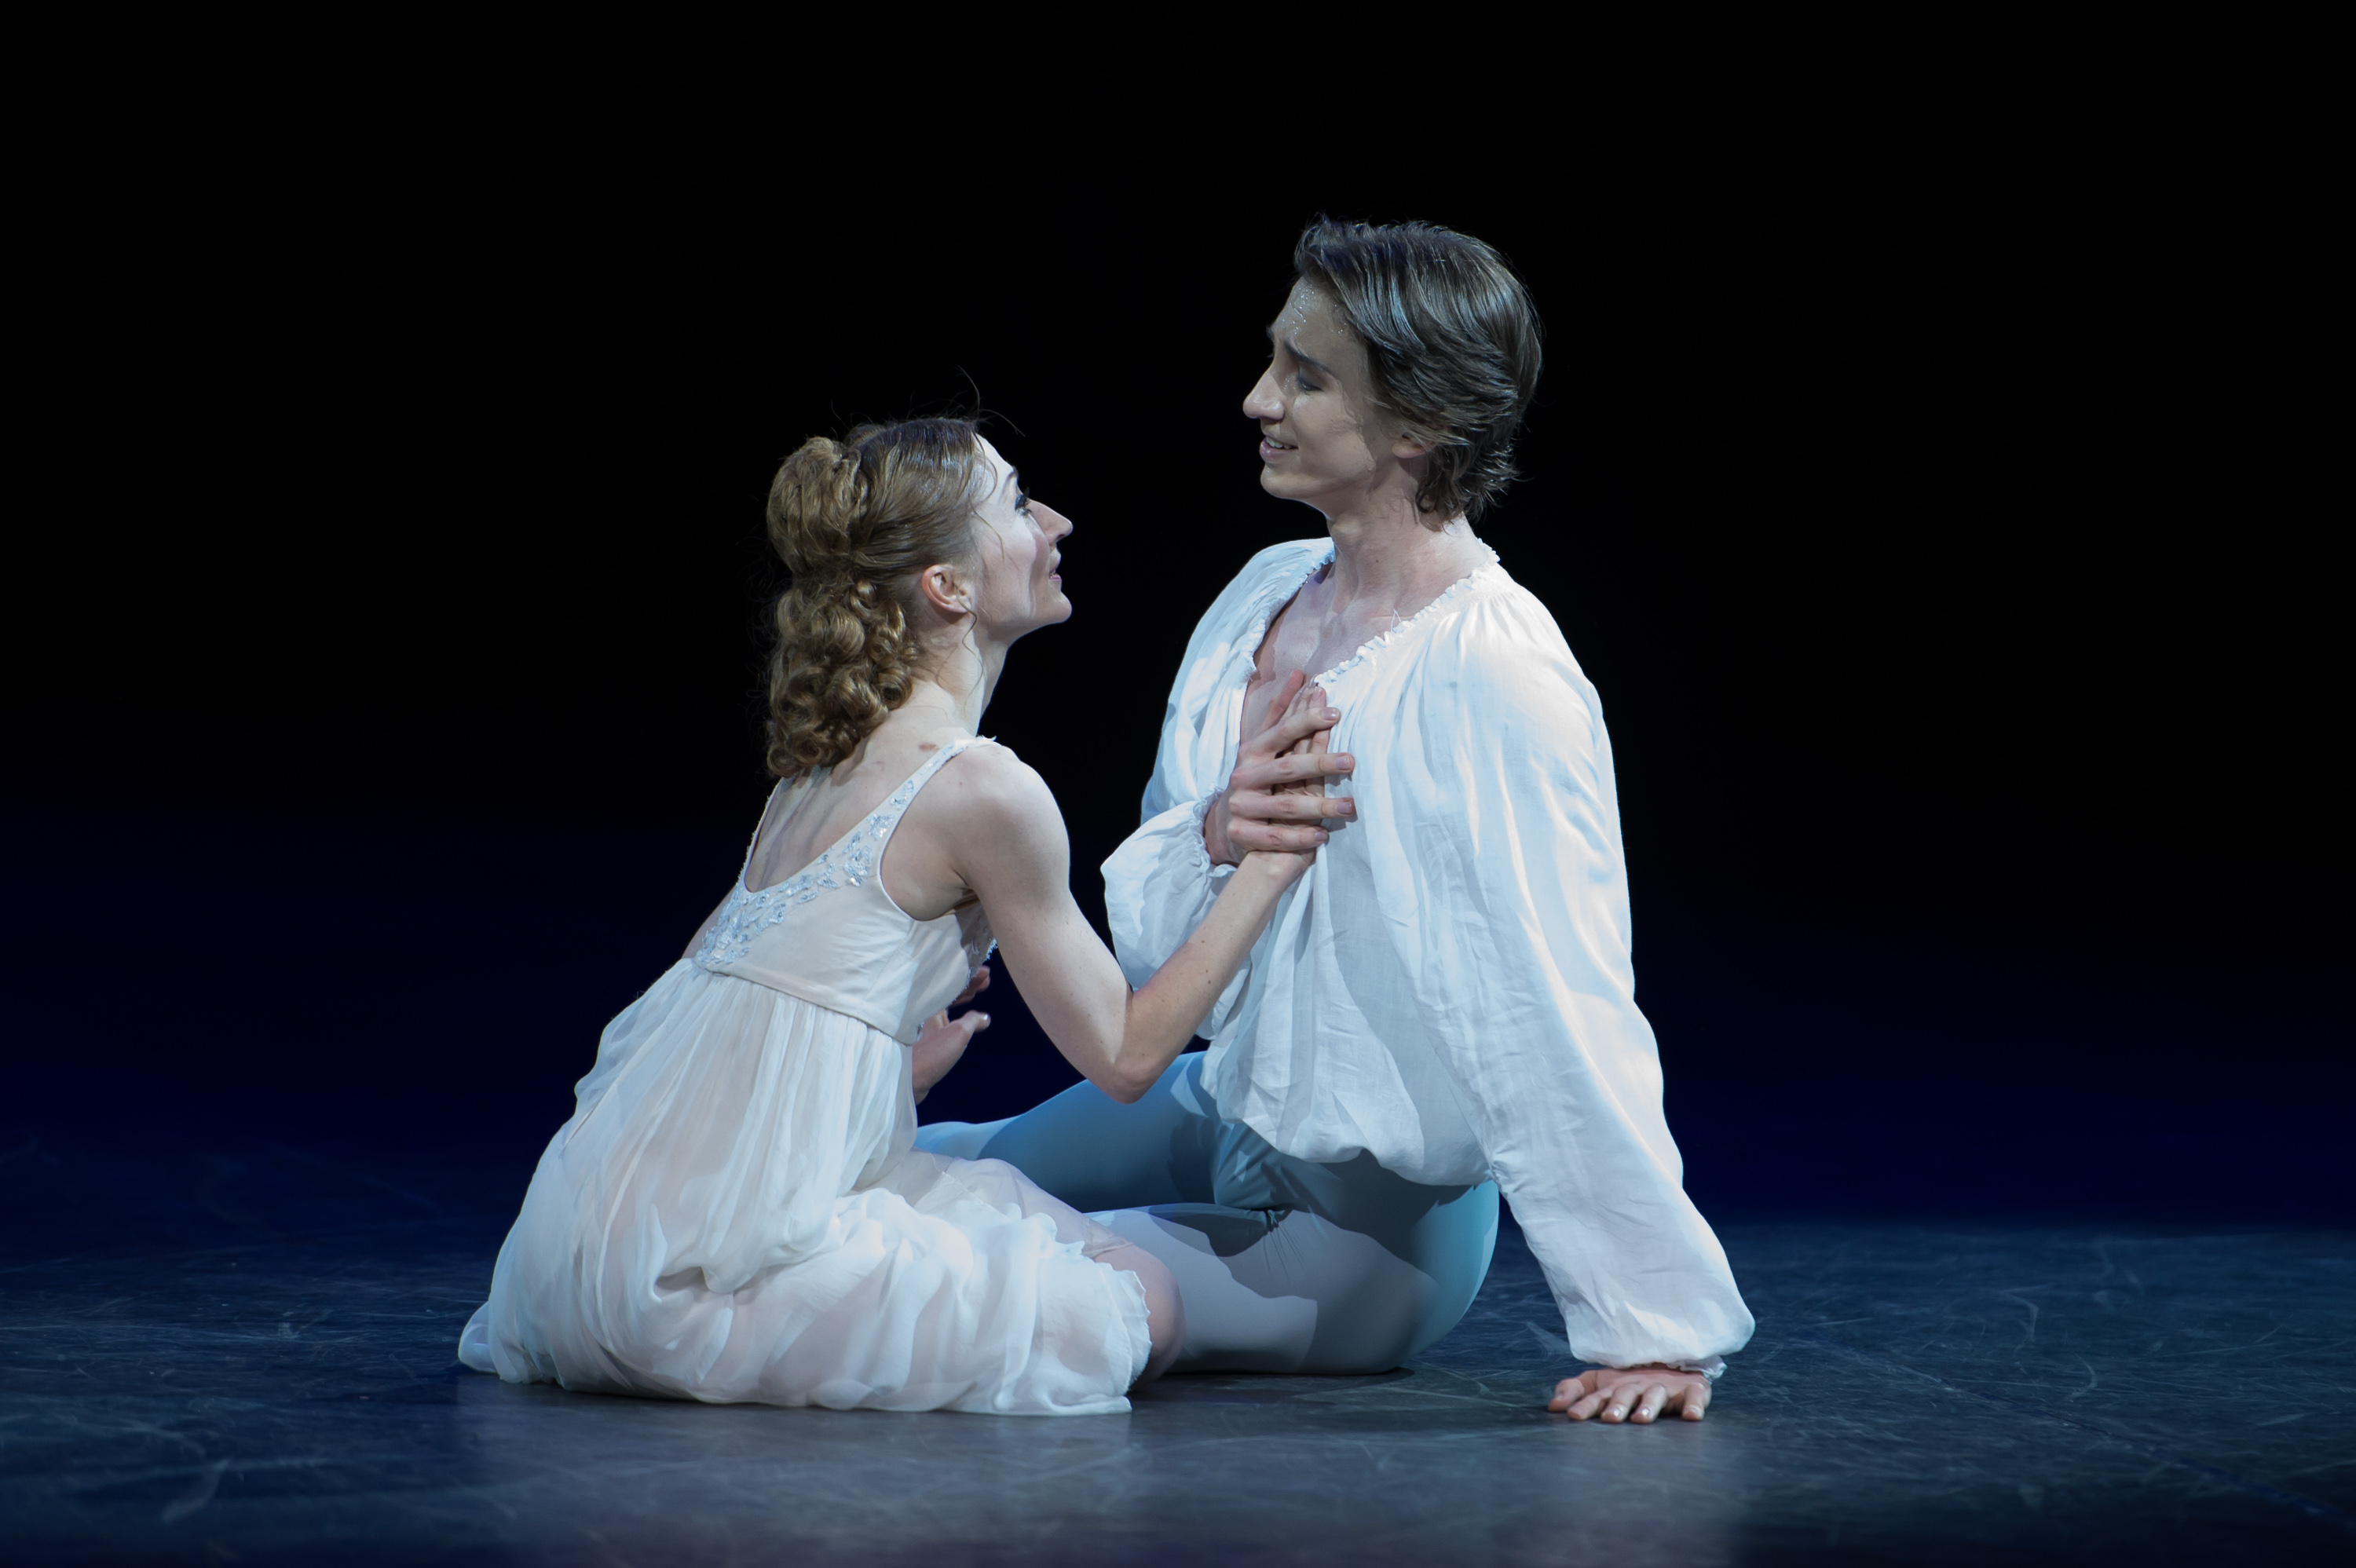 Romeo & Juliet. English National Ballet's Romeo & Juliet.